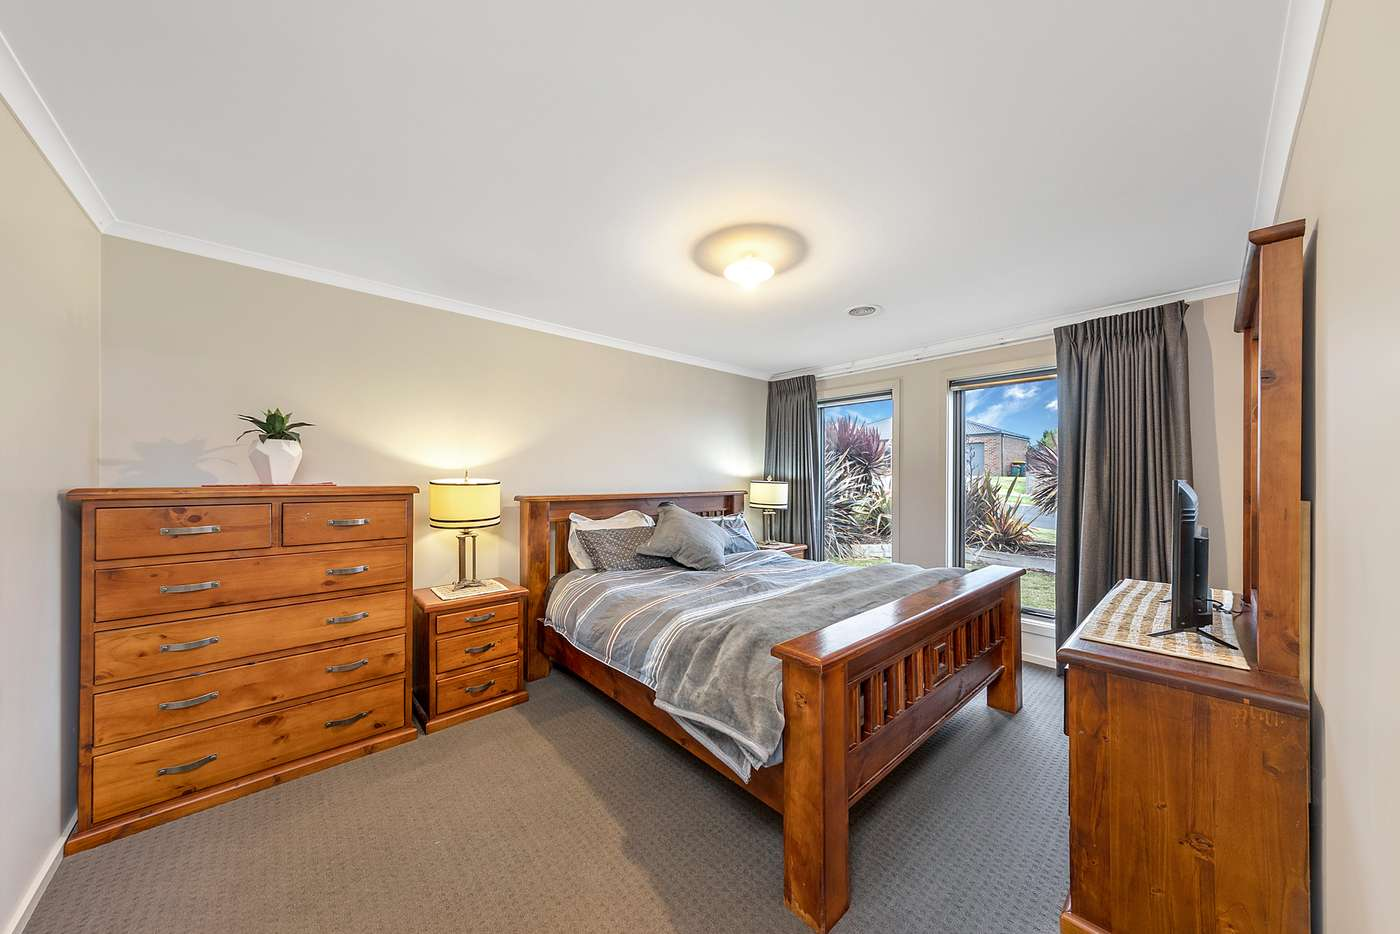 Seventh view of Homely house listing, 9 Armytage Avenue, Warrnambool VIC 3280